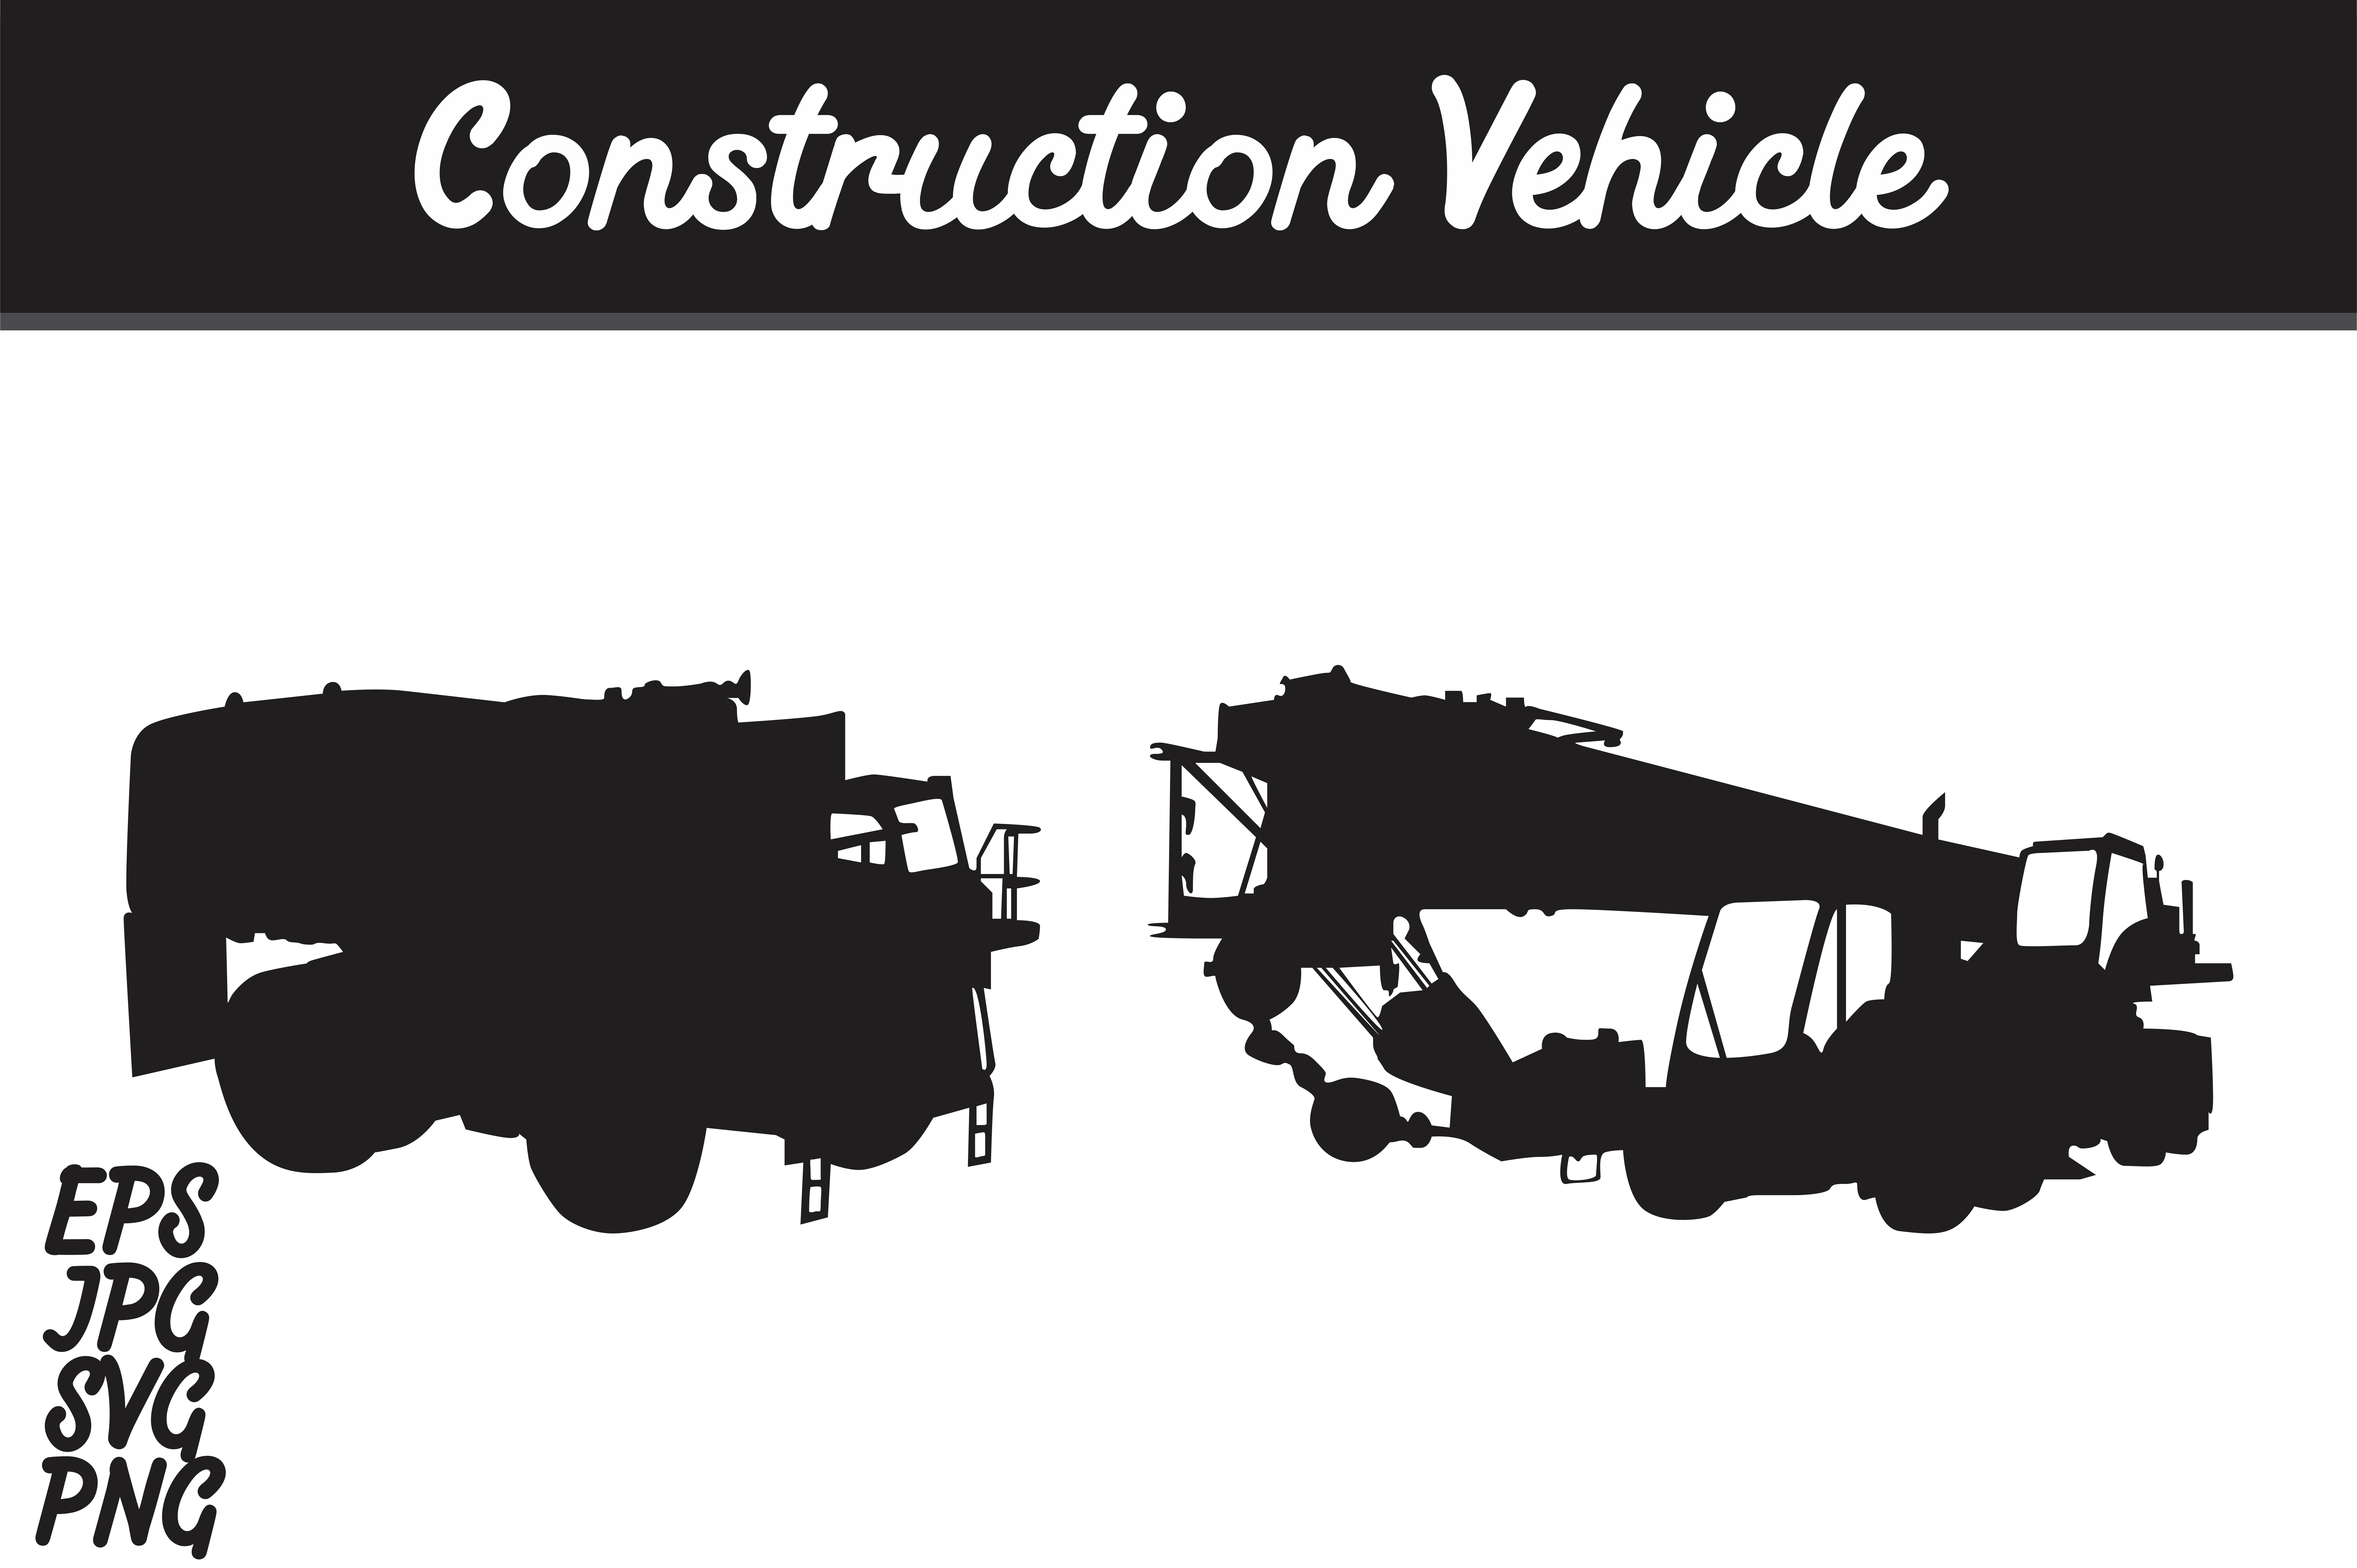 Download Free Construction Vehicle Silhouette Set Svg Vector Image Bundle for Cricut Explore, Silhouette and other cutting machines.